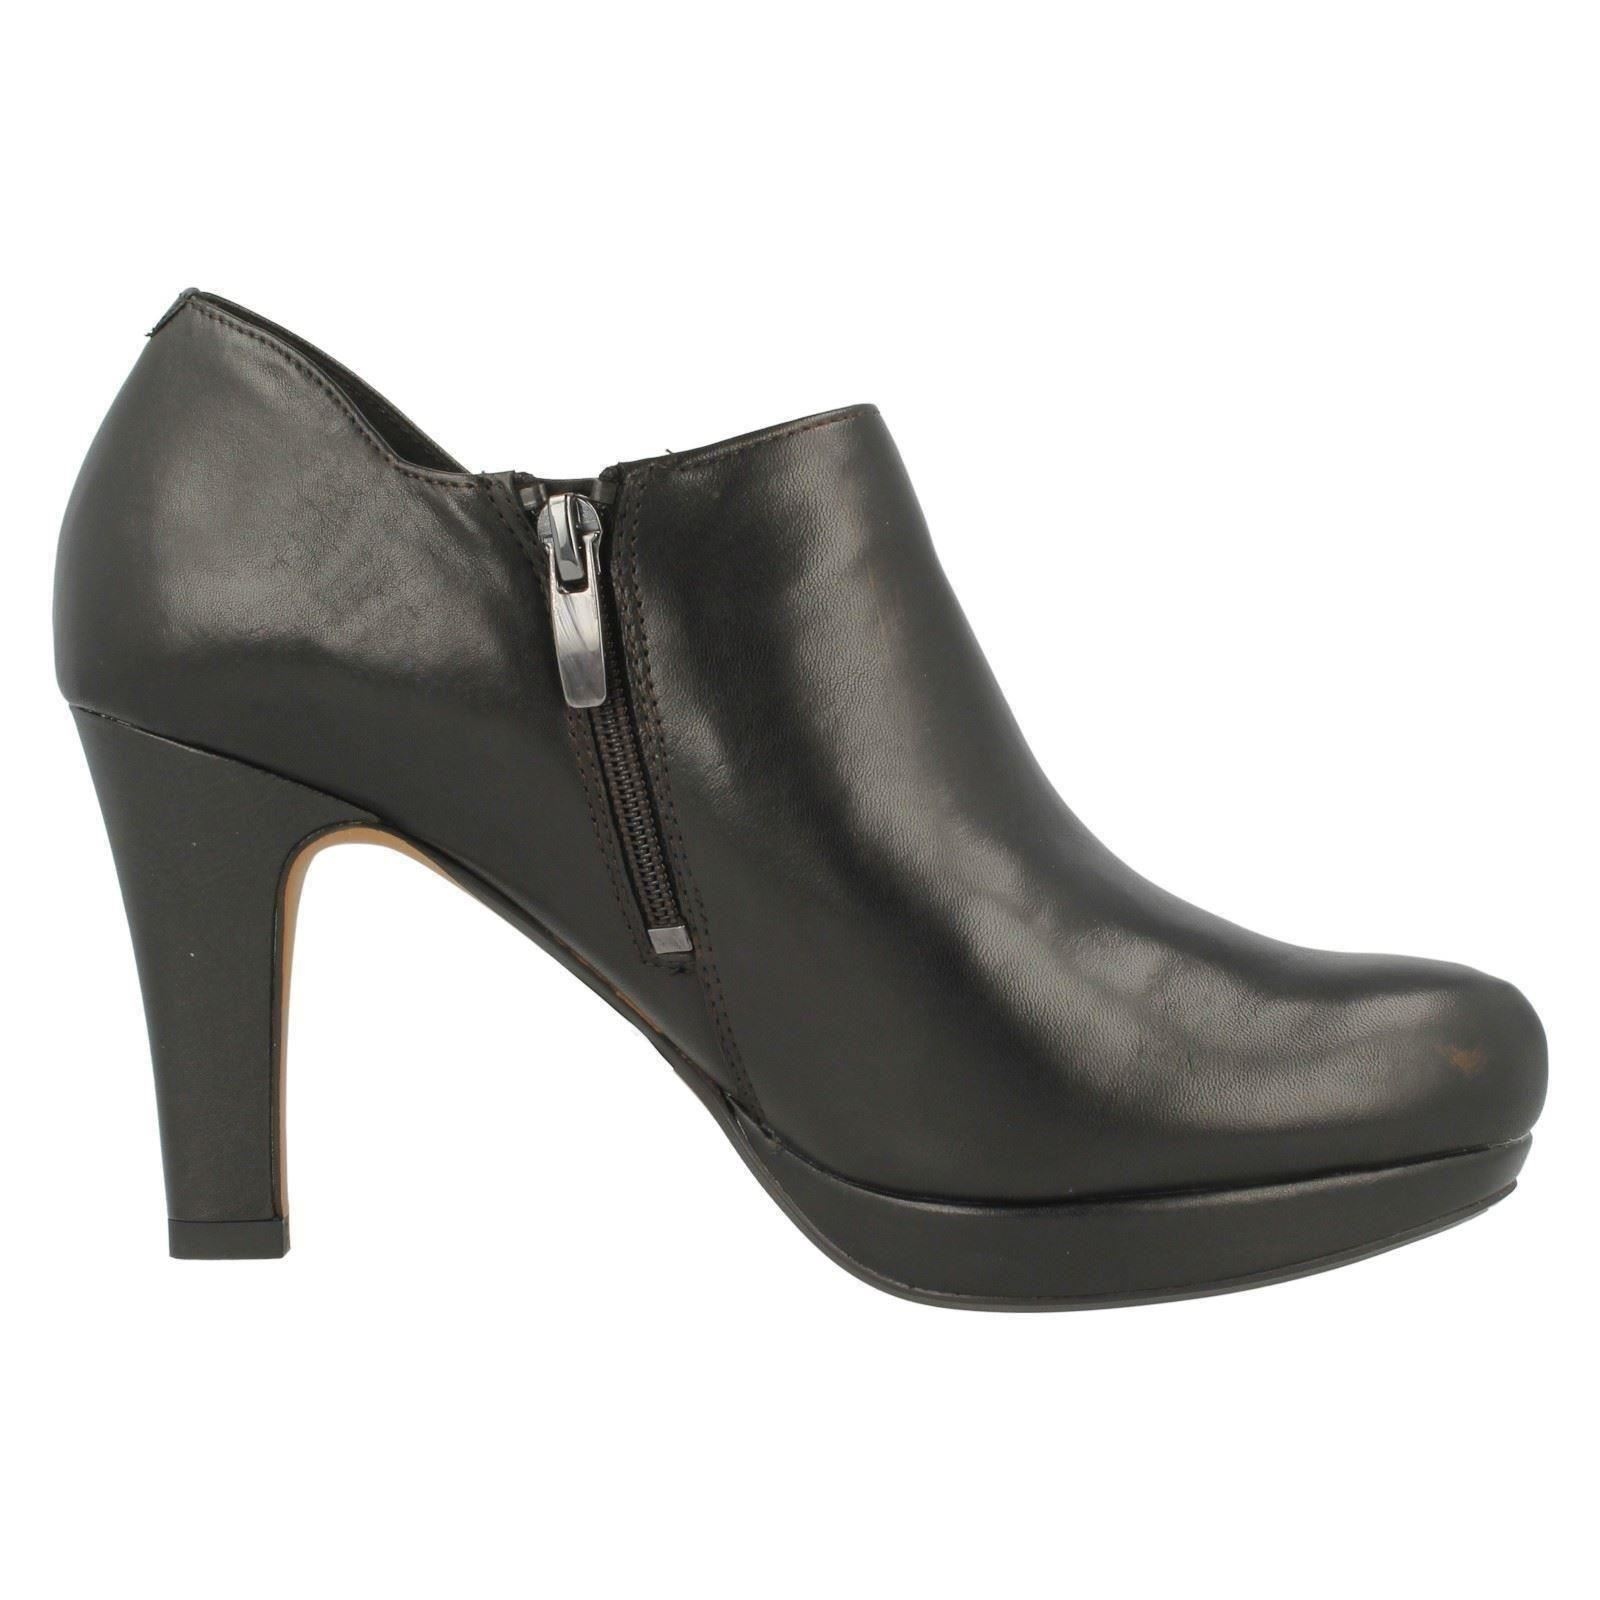 clarks leather boot shoes with high heel and